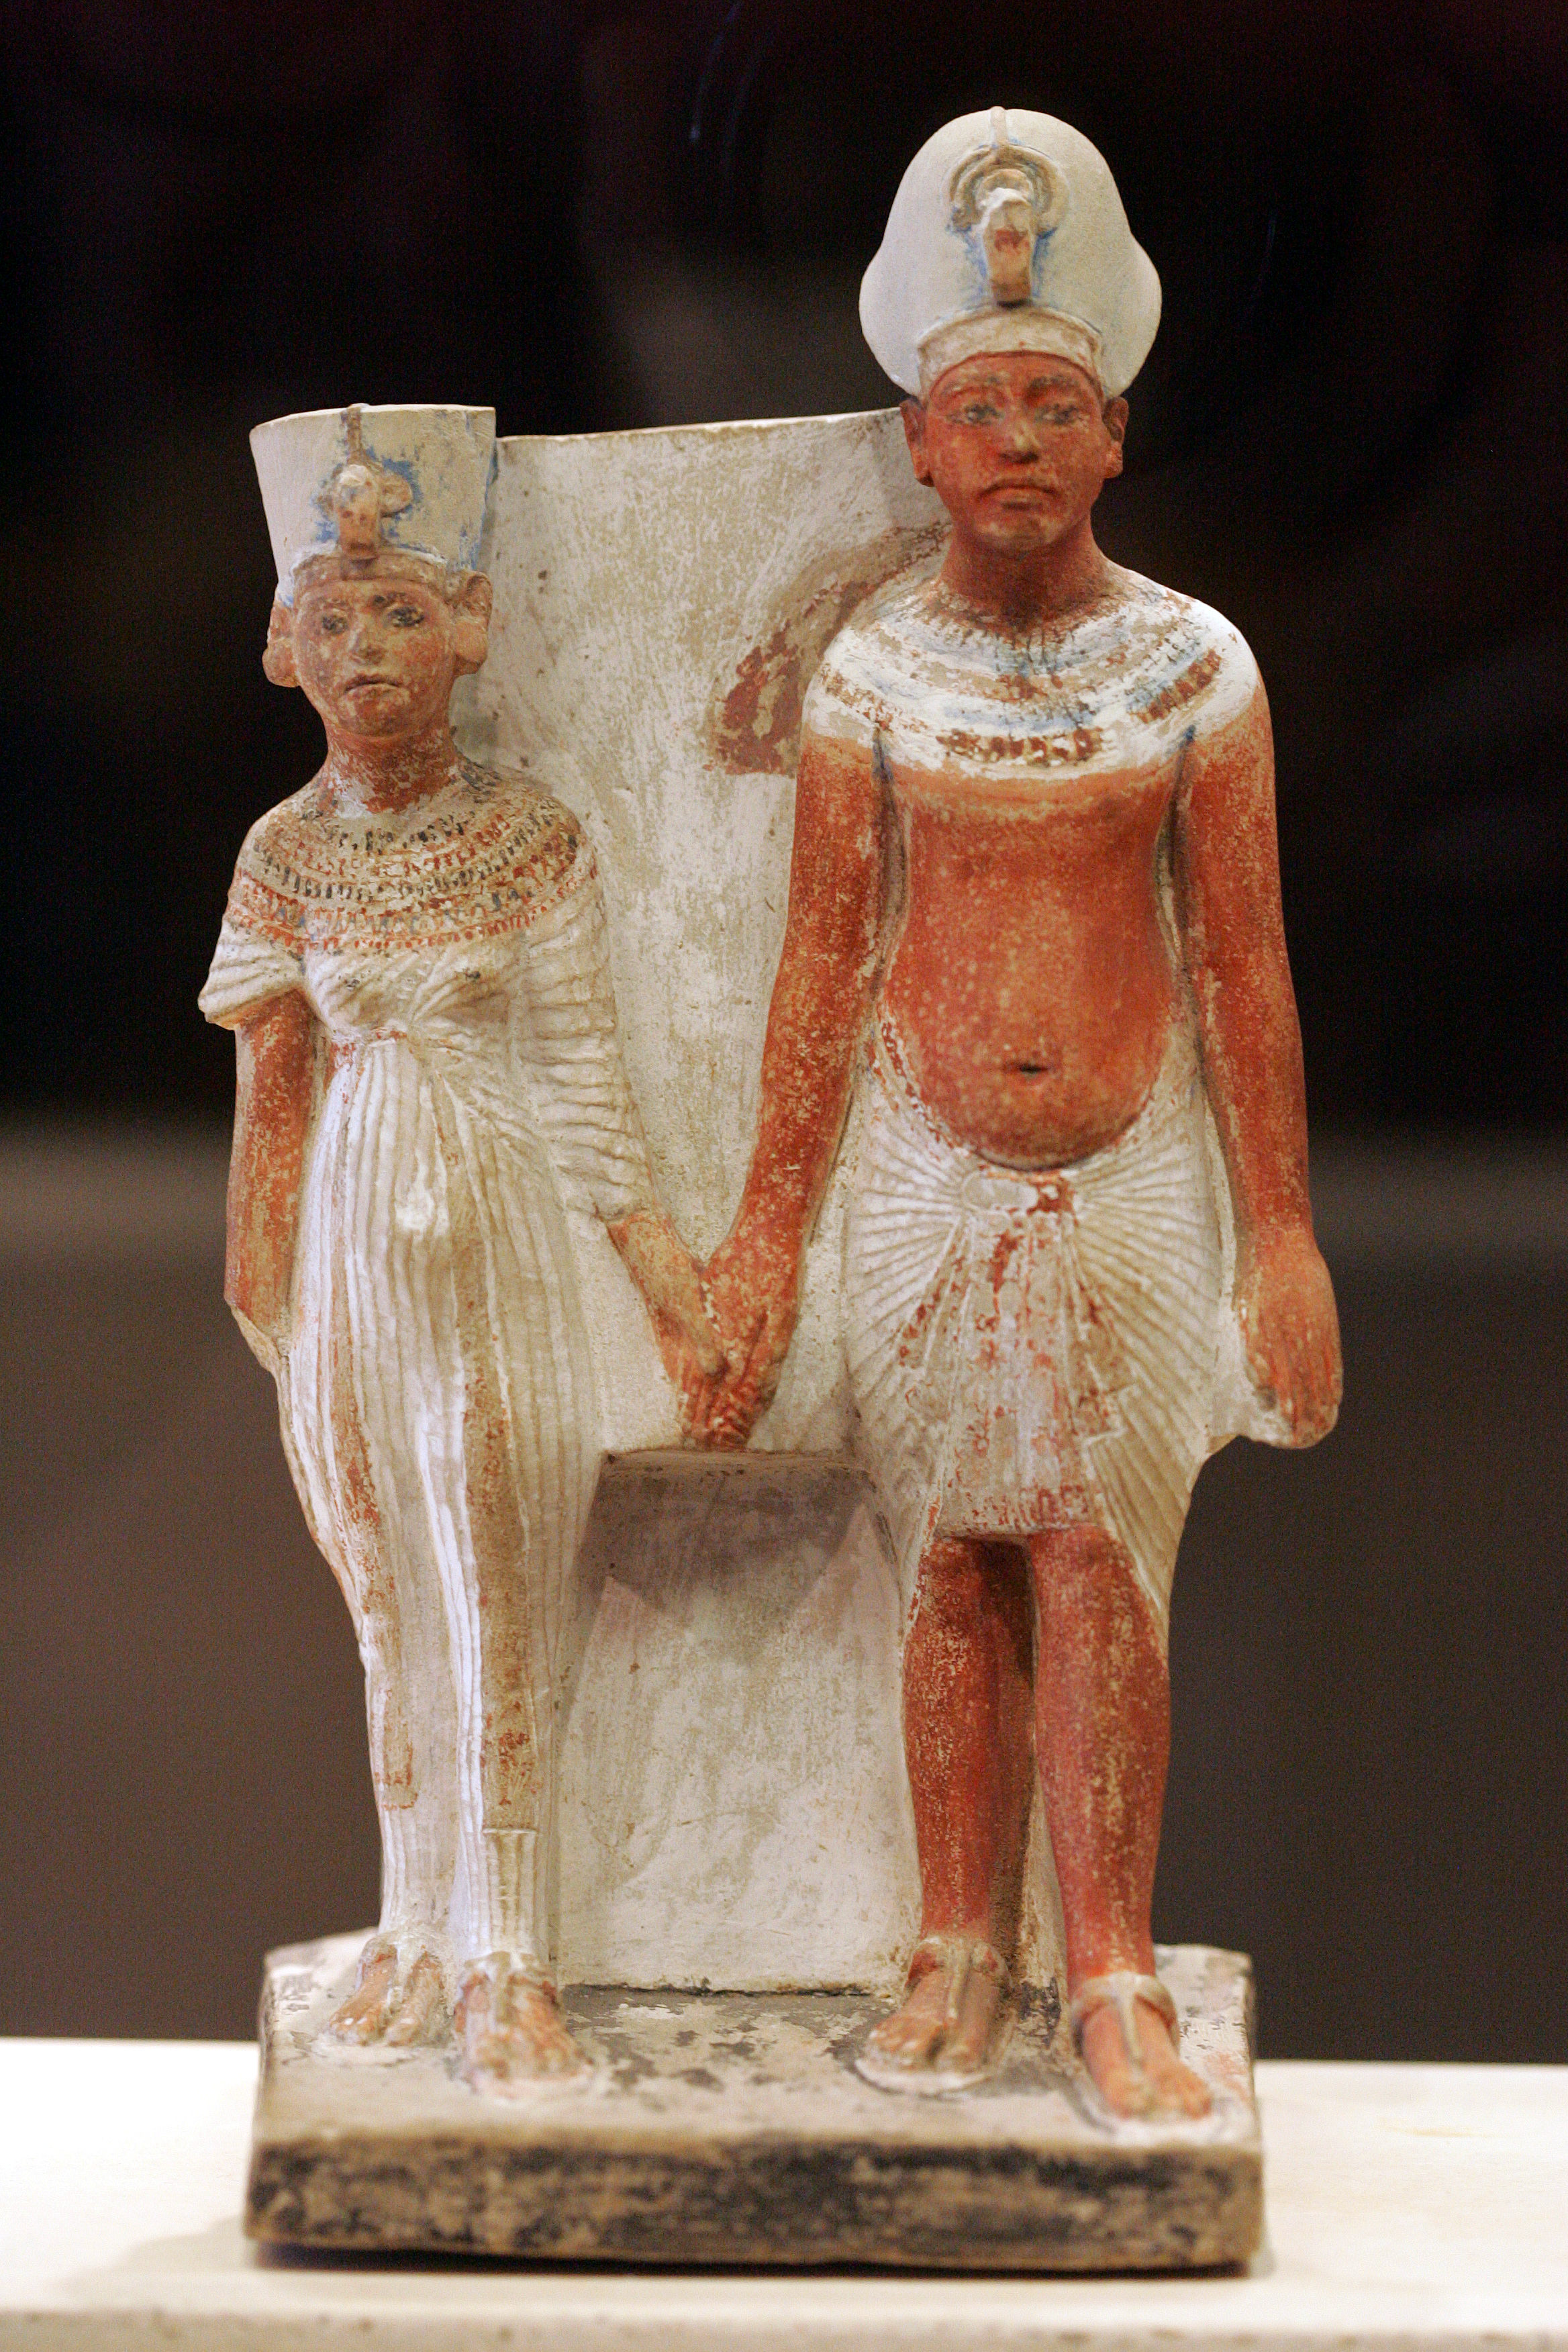 https://upload.wikimedia.org/wikipedia/commons/1/16/Akhenathon_and_Nefertiti_E15593_mp3h8771.jpg